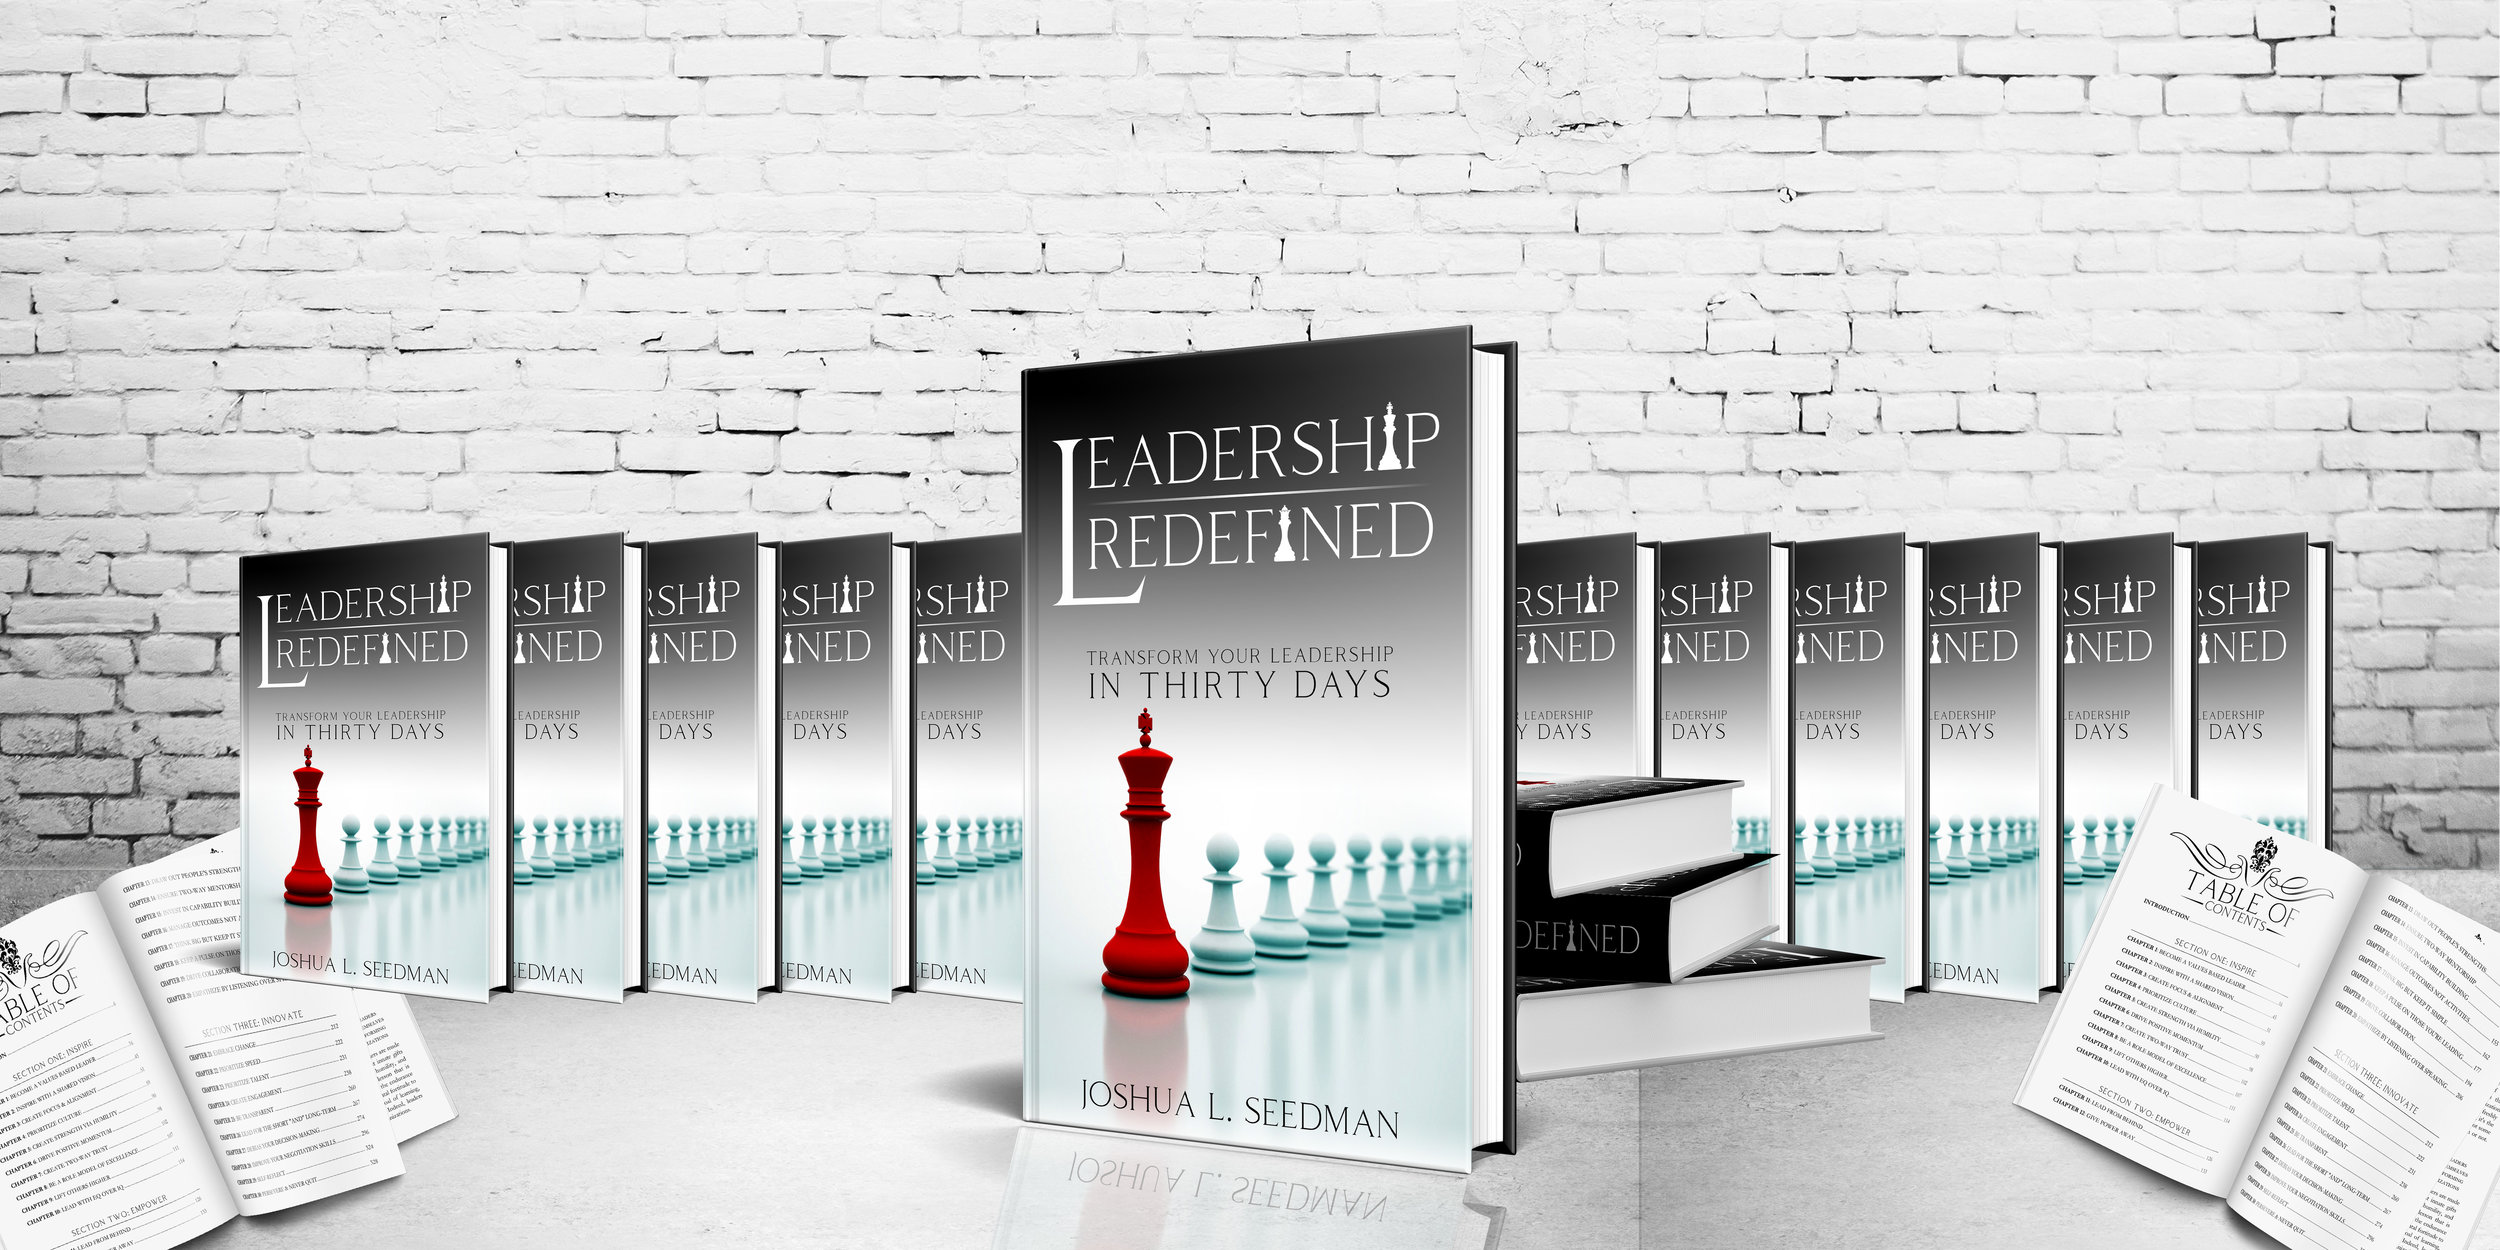 Leadership Redefined   Transform Your Leadership in 30 Days   Purchase Book